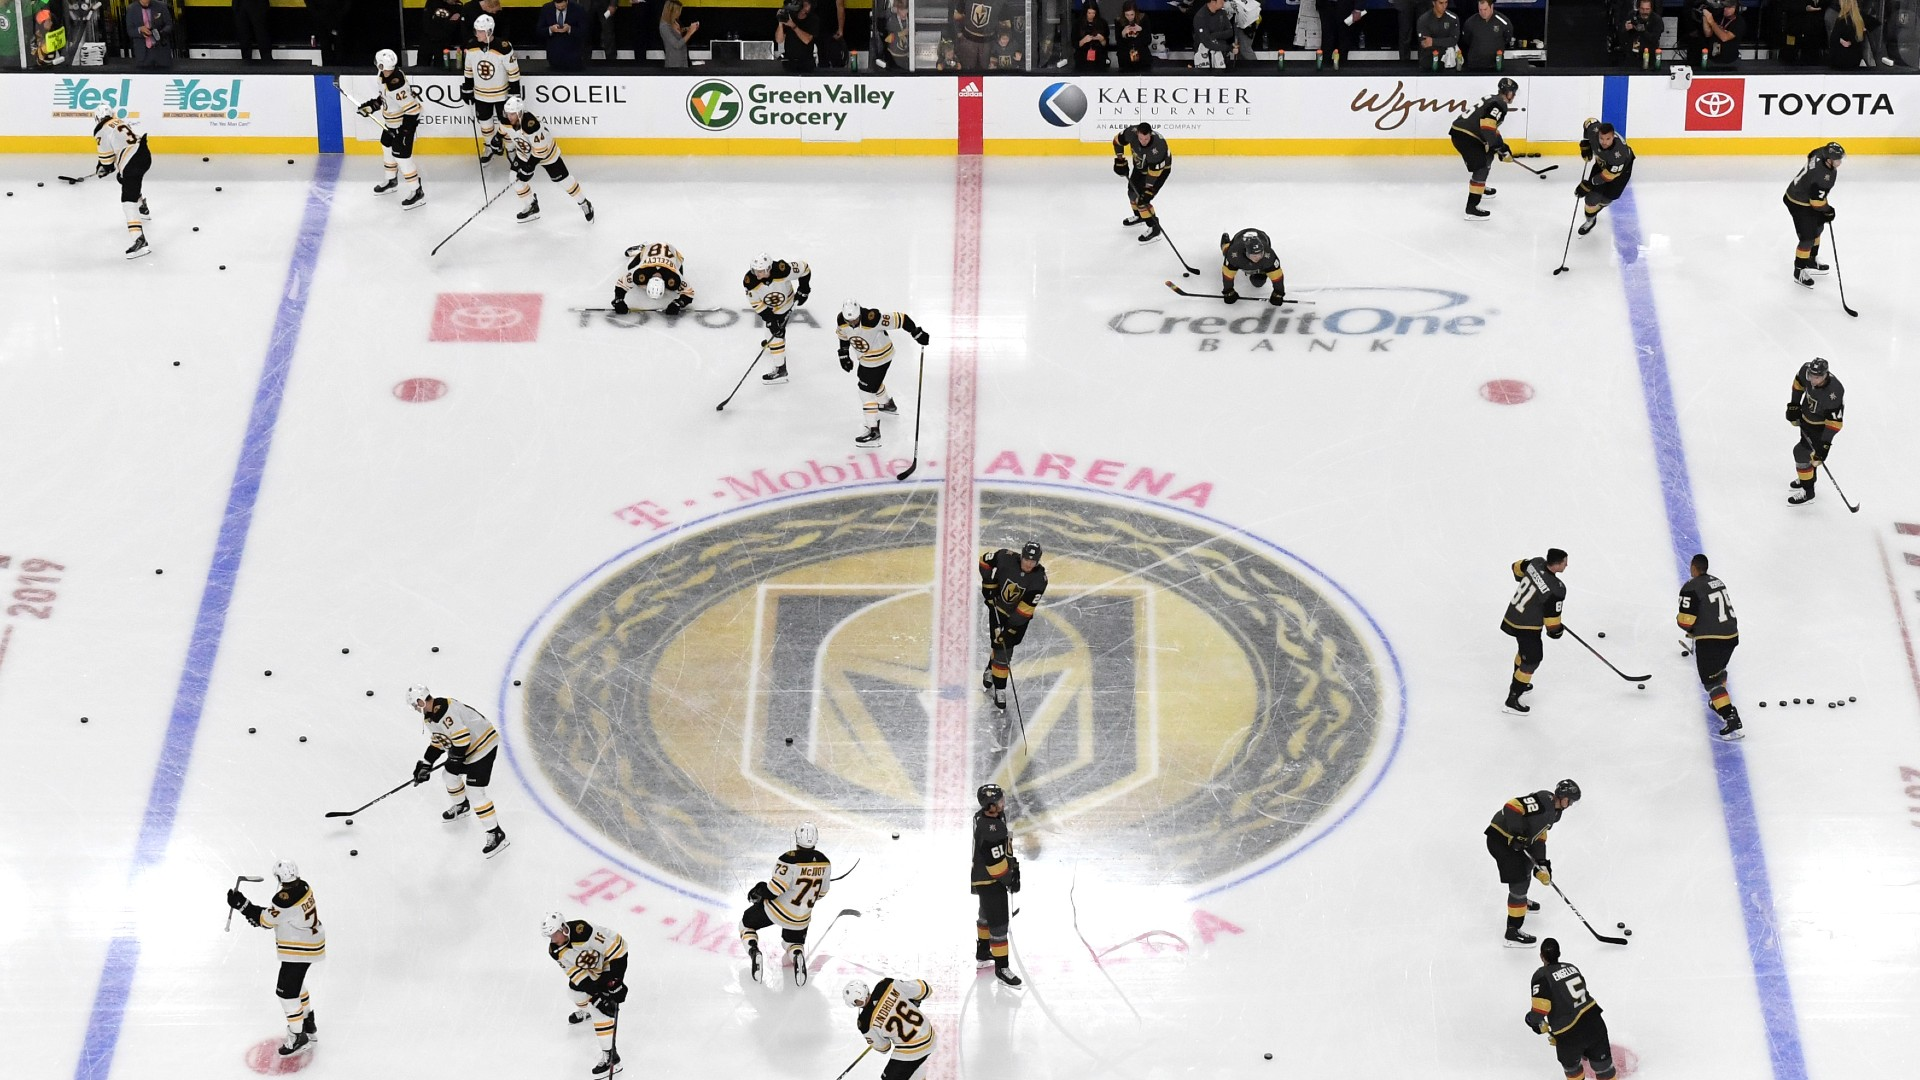 When does 2021 NHL season start? Latest updates on dates, games, alignment, rosters for upcoming season